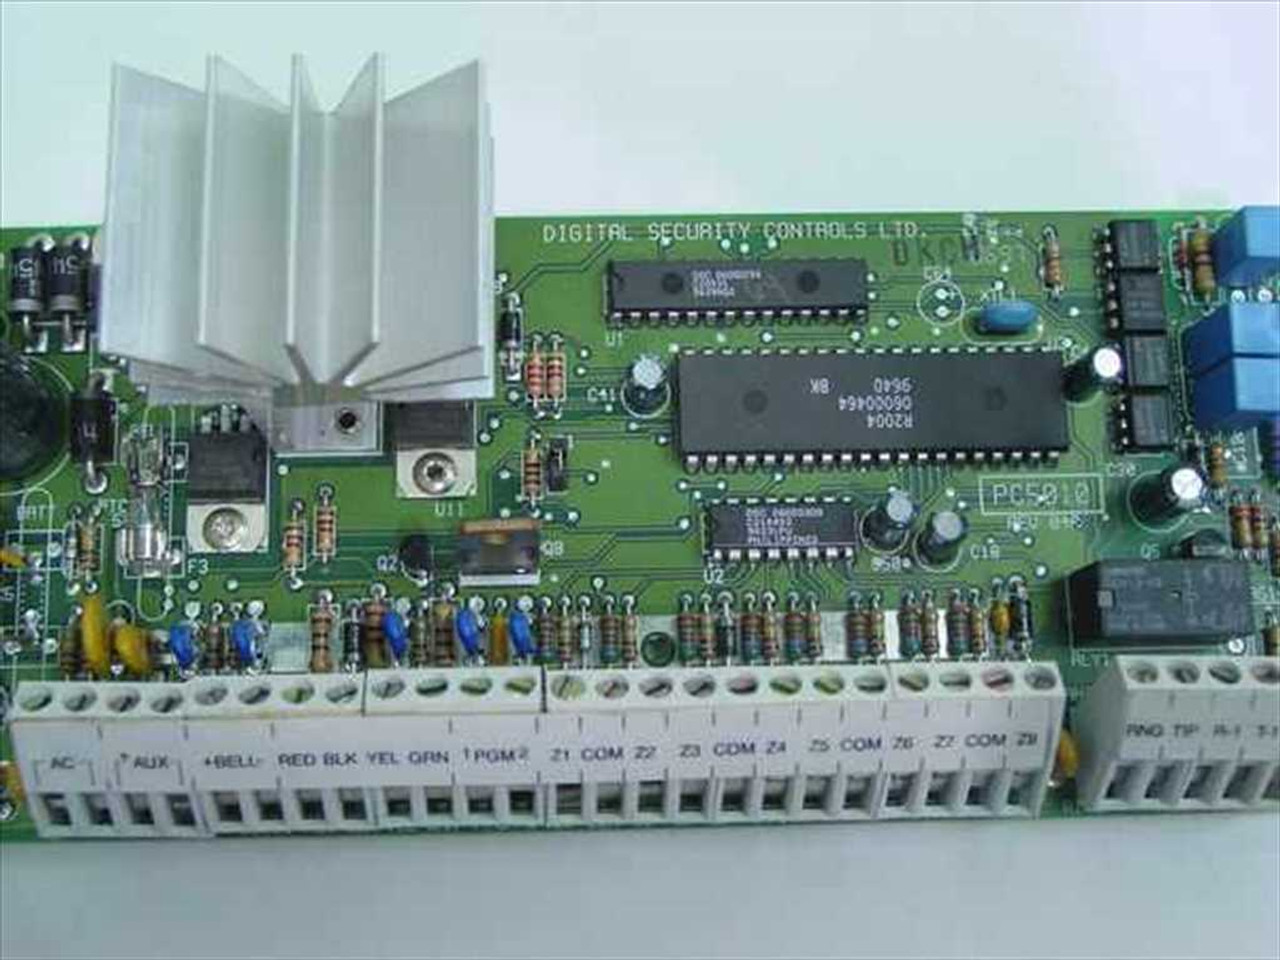 ... DSC PC5010 Power 832 Security Panel and Cabinet ...